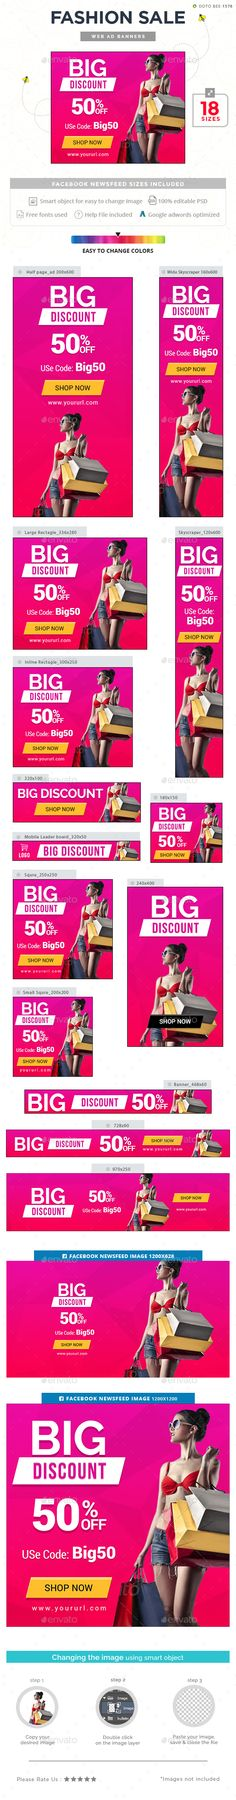 Fashion Sale Banner Design Template - Banners & Ads Web Template PSD. Download here: https://graphicriver.net/item/fashion-sale-banners/17228656?s_rank=203&ref=yinkira